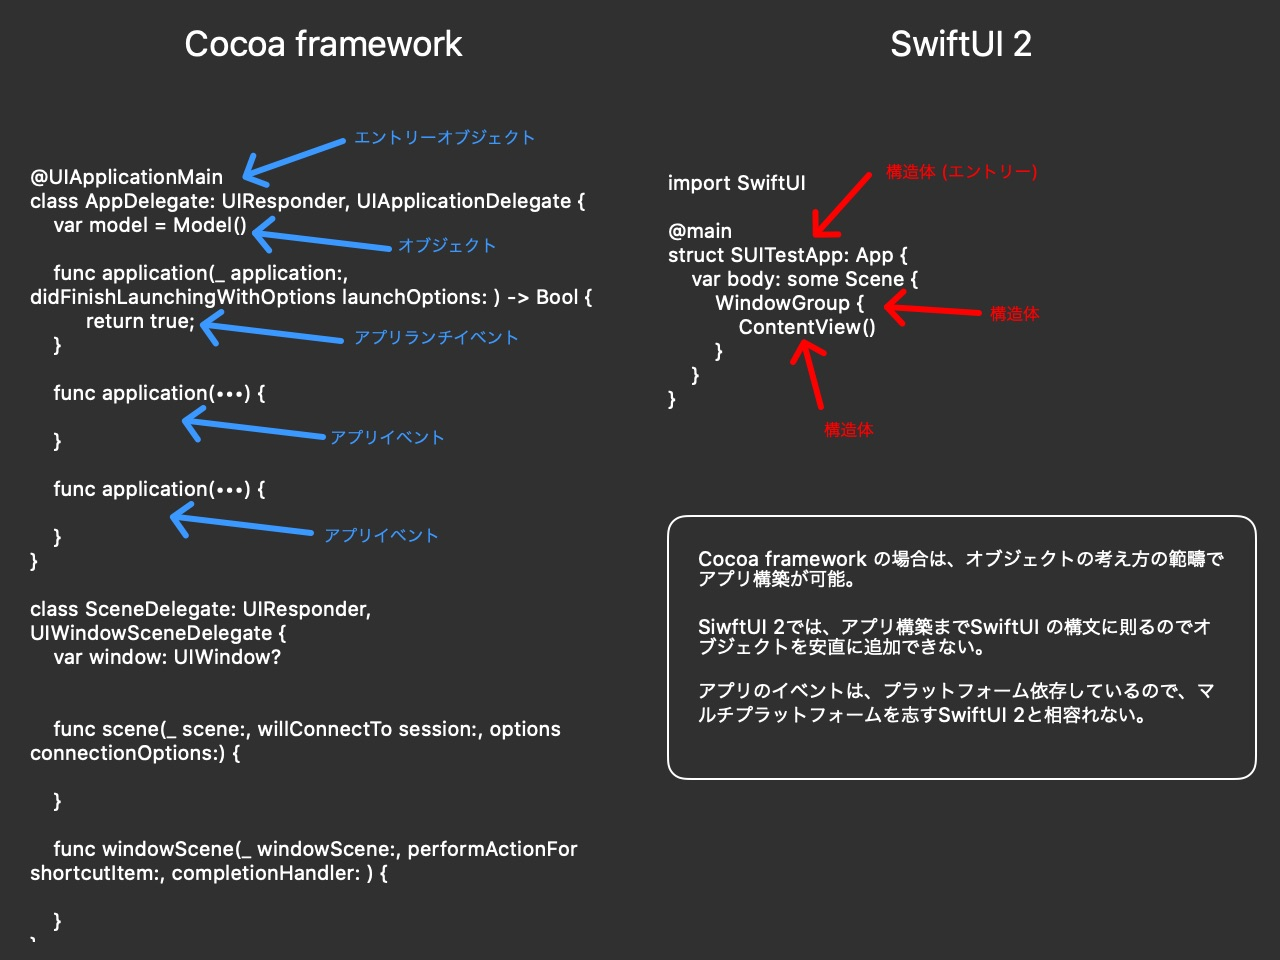 Cocoa framework And SwiftUI 2